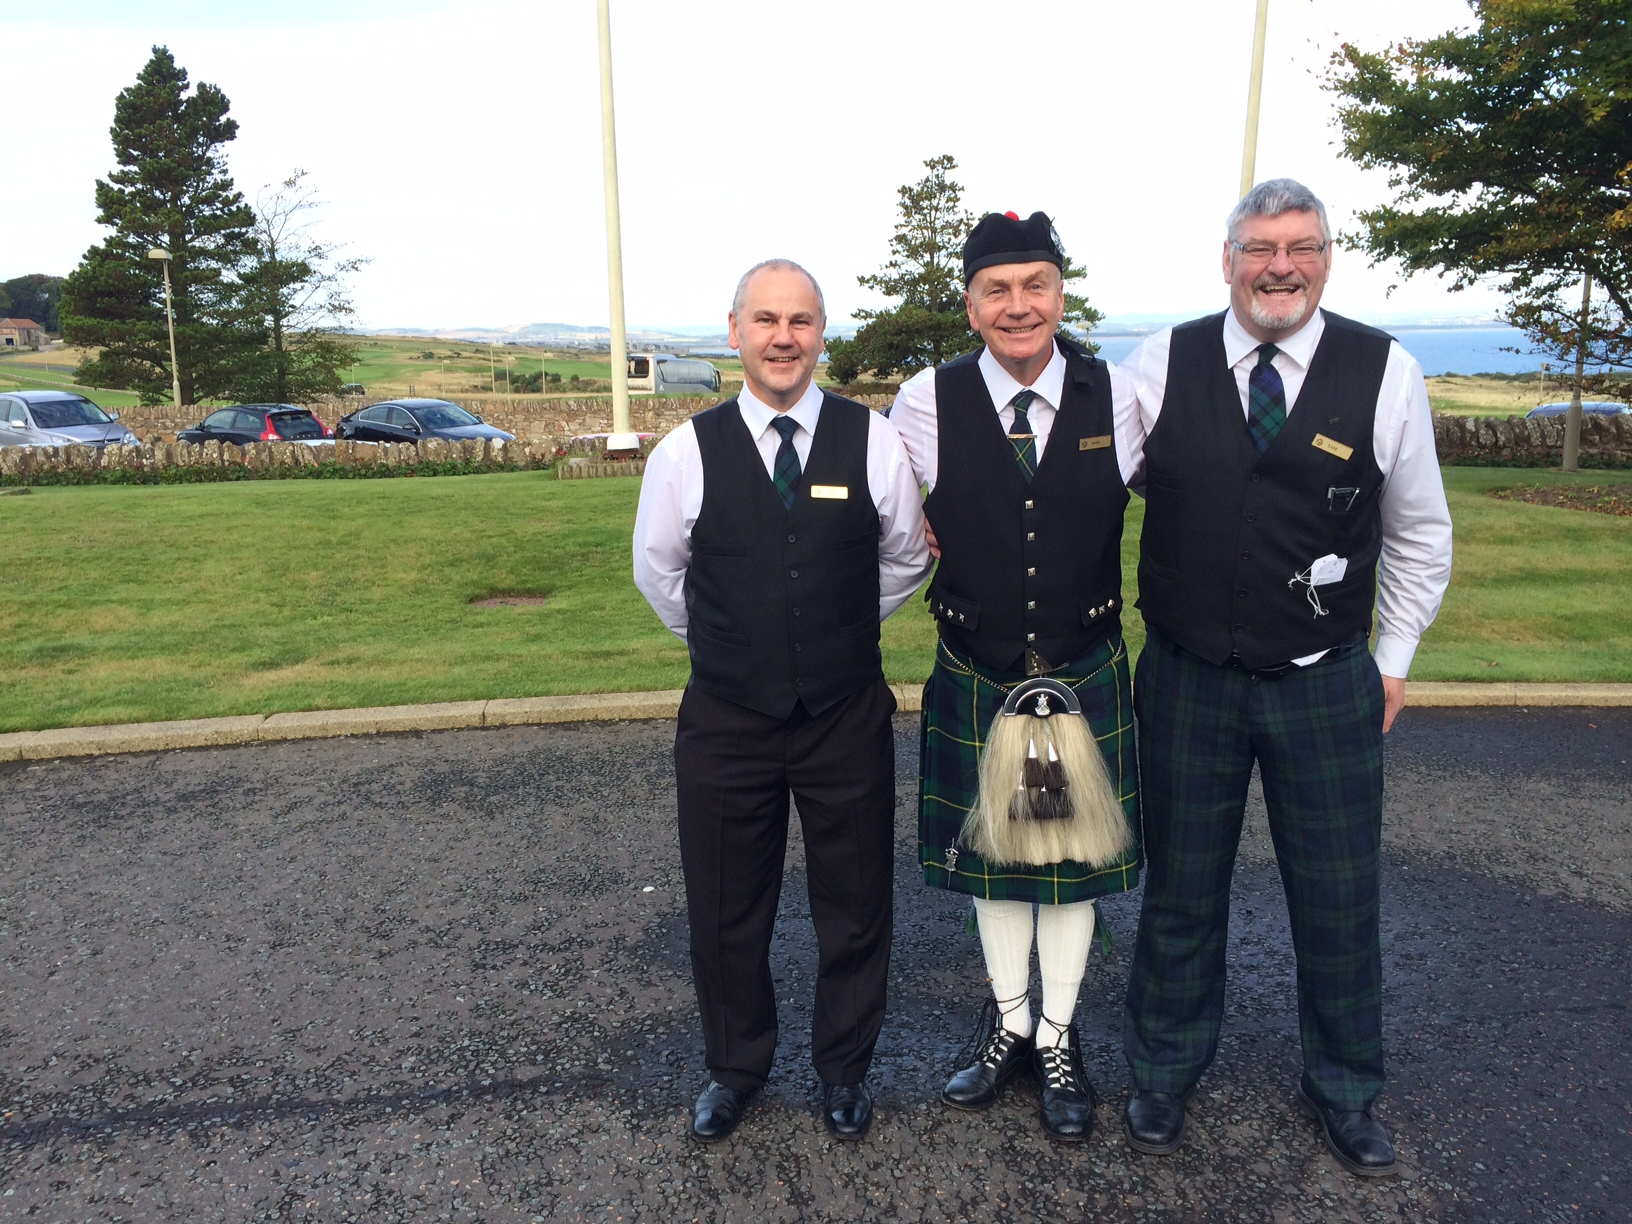 Fairmont St Andrews Concierge Staff Ready To Greet and Help Guests